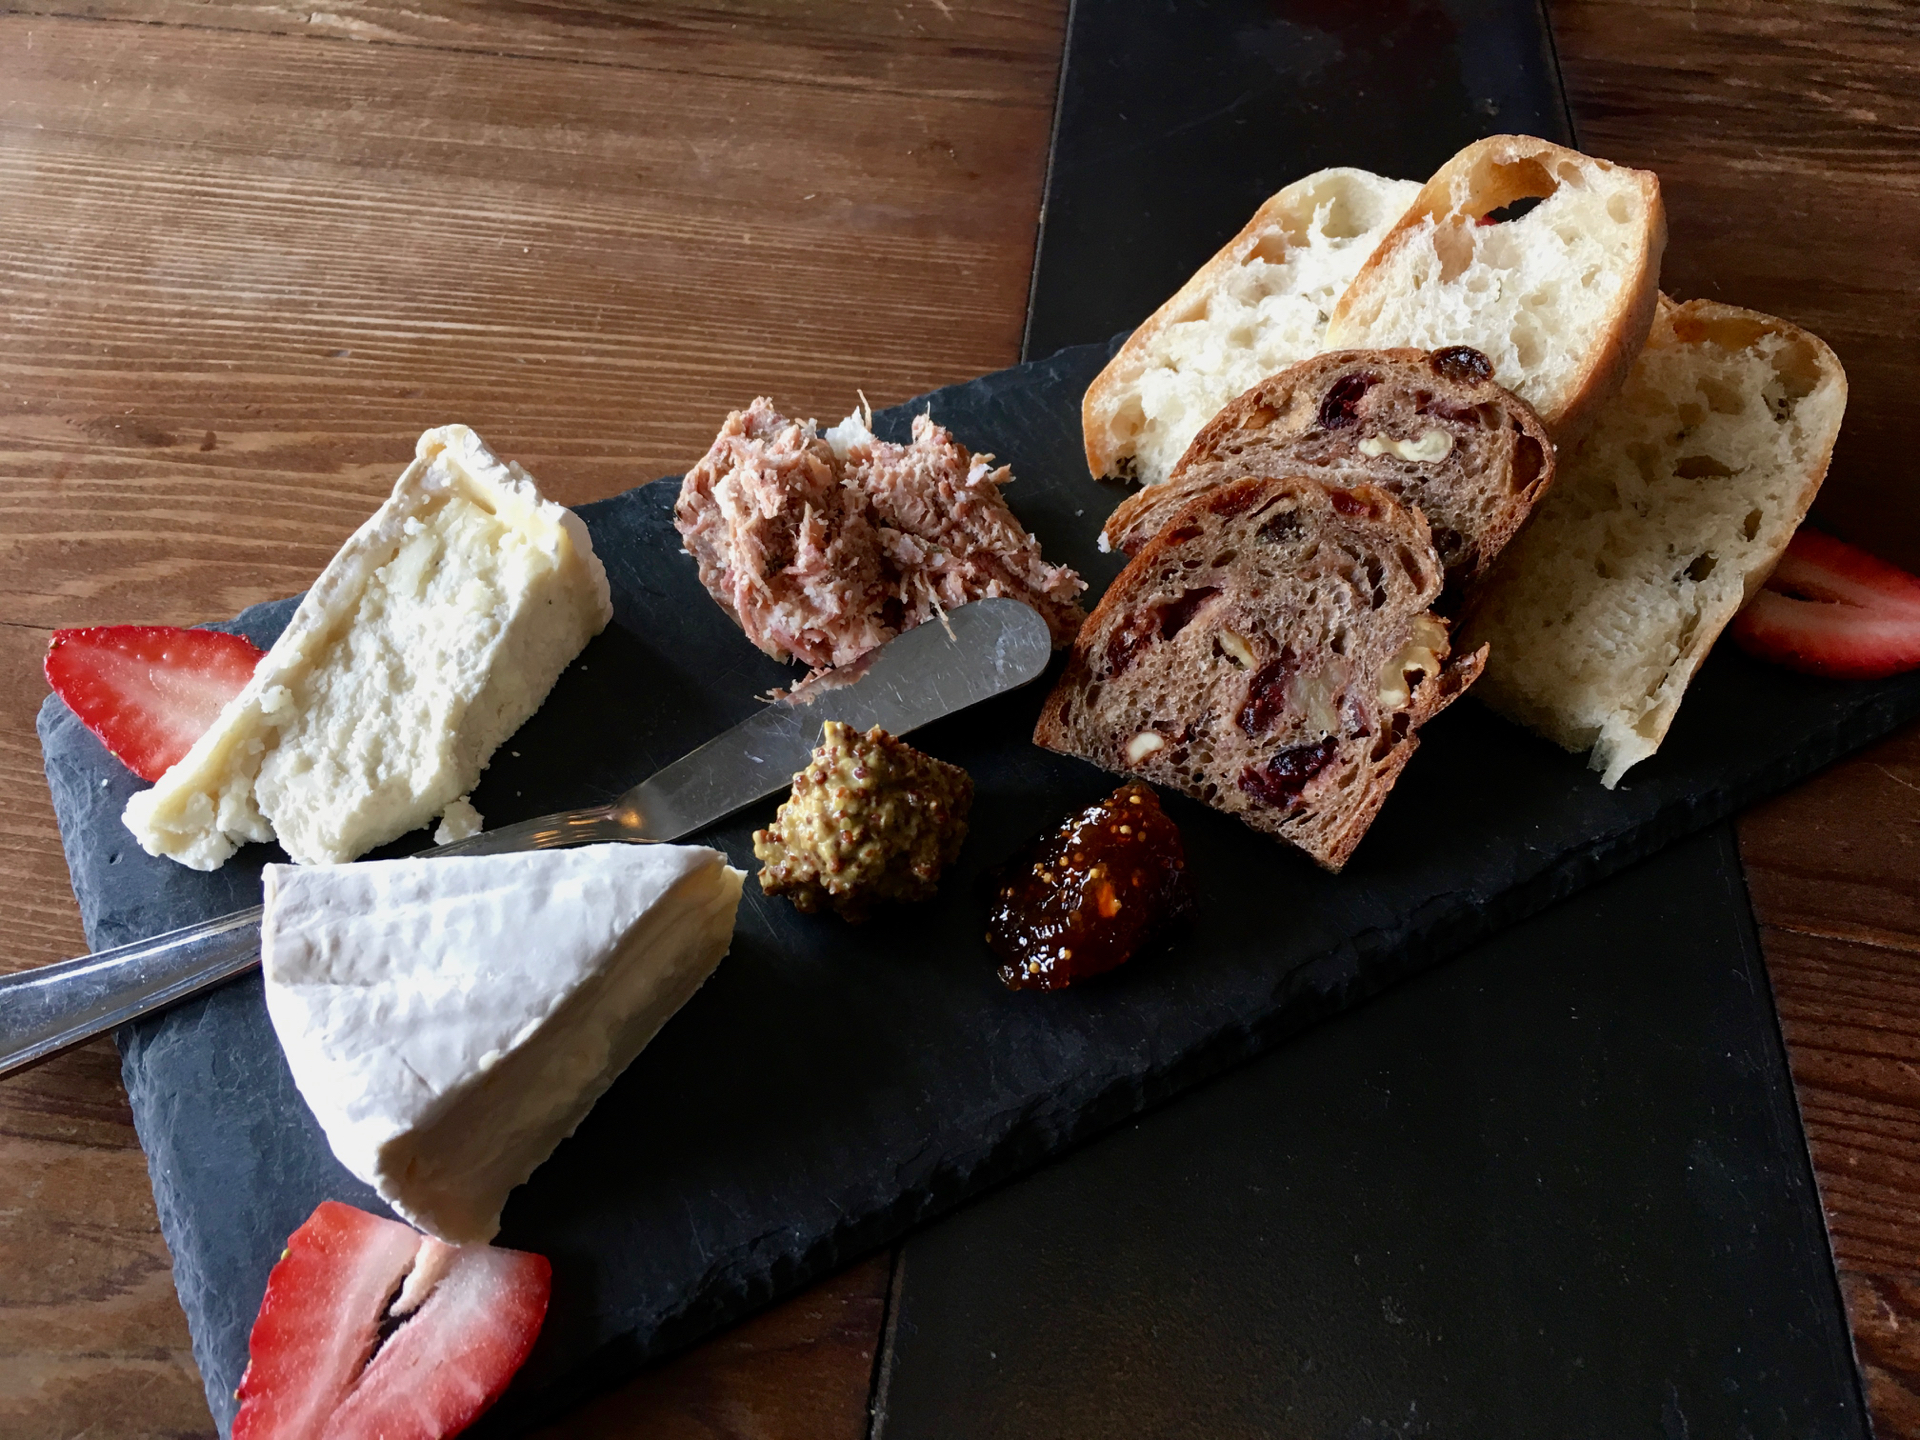 A cheeseboard at Rootstock Wine Bar with Marin French triple cream brie, Cypress Grove truffle tremor, pork rillette and Acme bread.